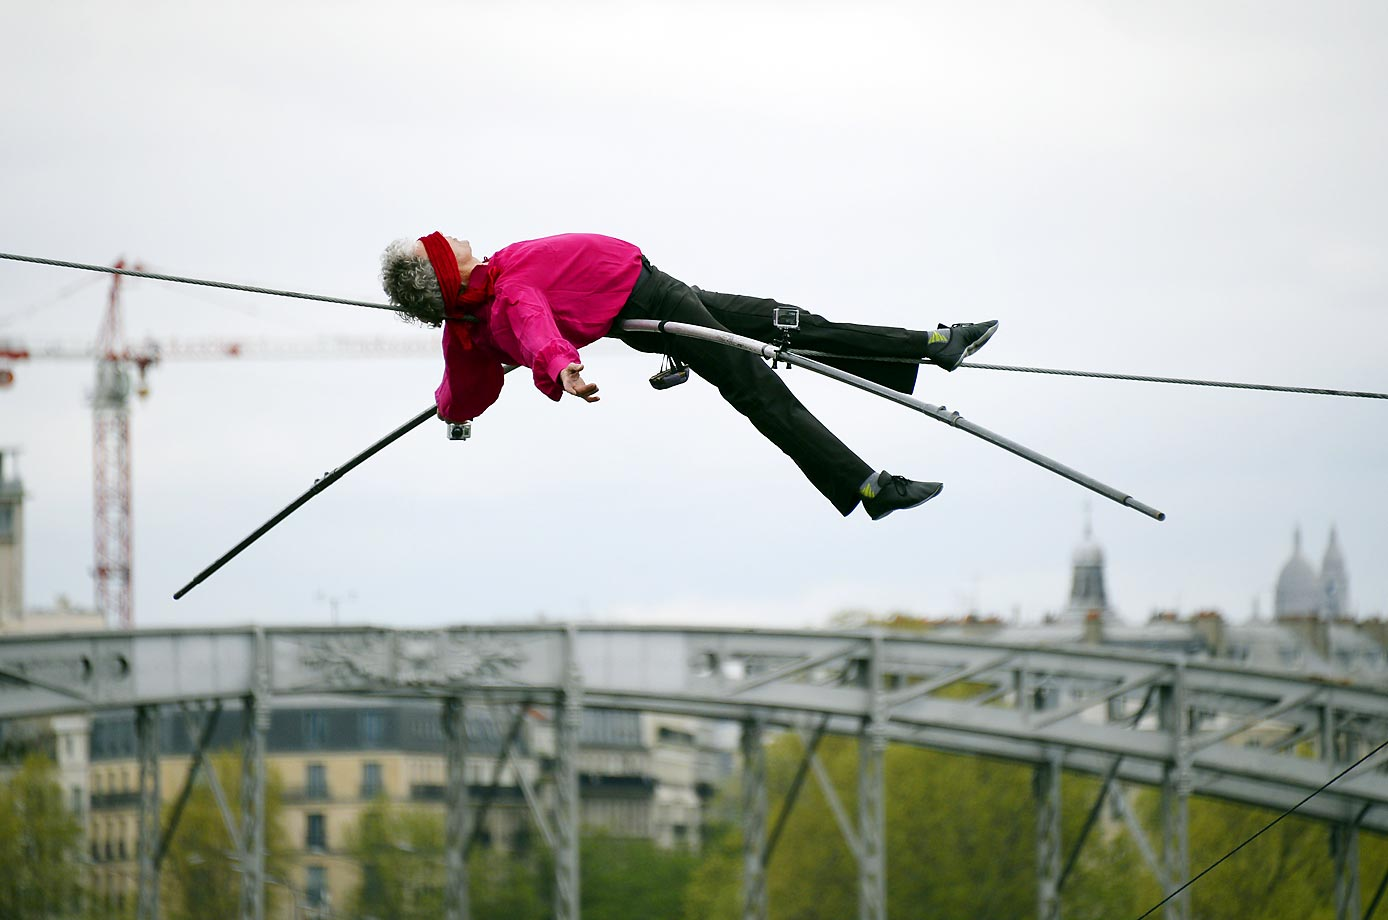 French tightrope walker Denis Josselin performs over the Seine river in Paris, on April 6, 2014.